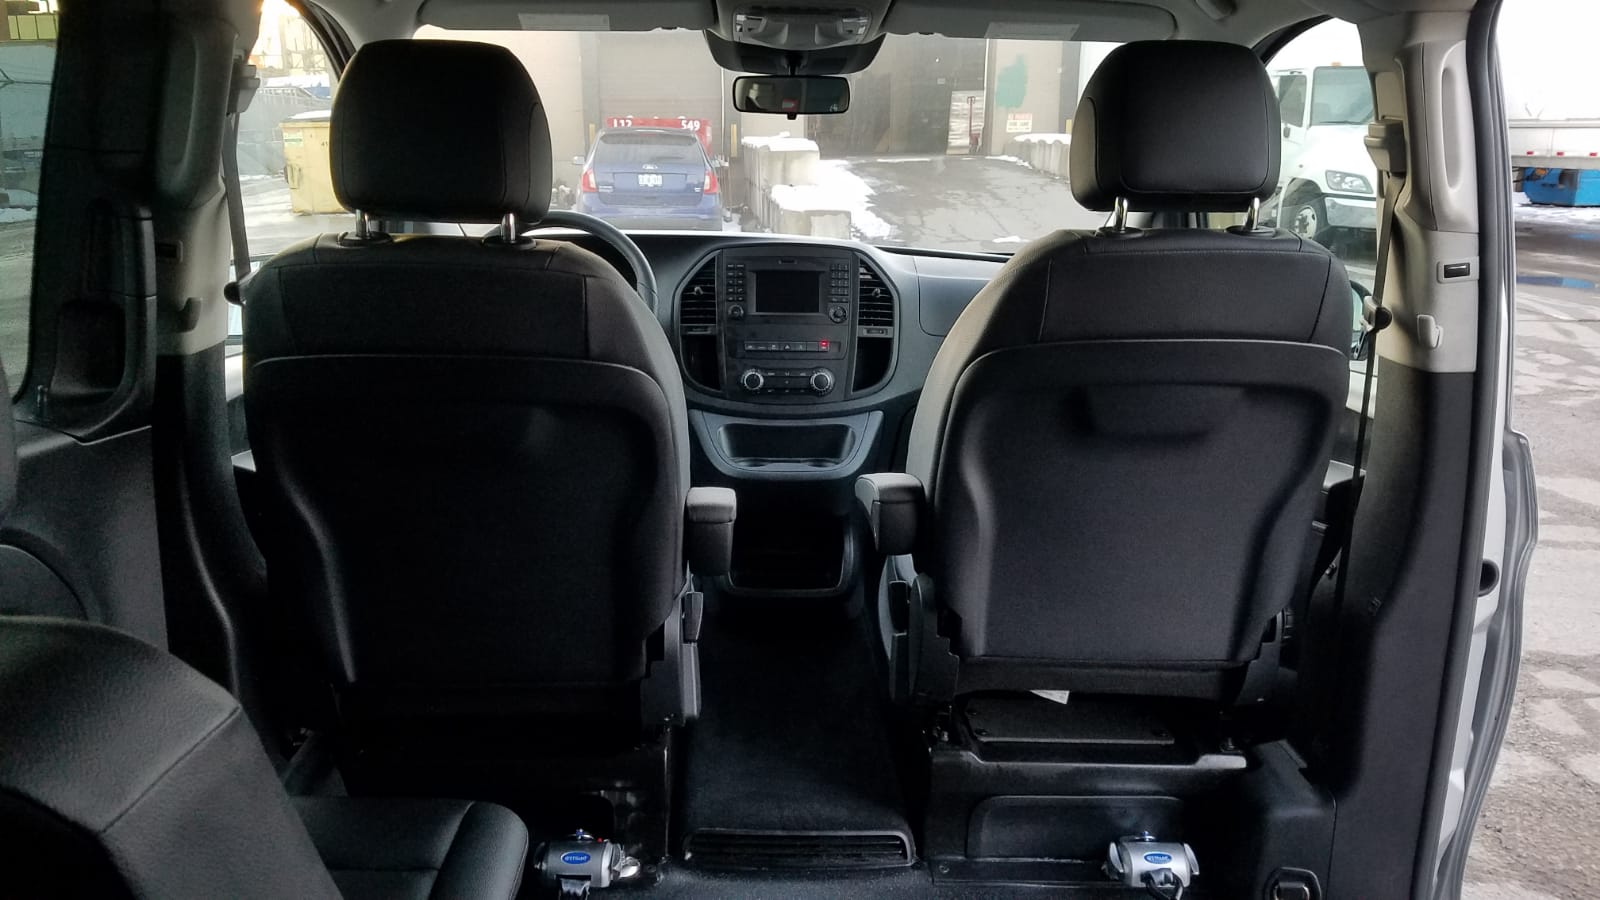 Interior view of wheelchair seat perspective of 2020 Mercedes Metris